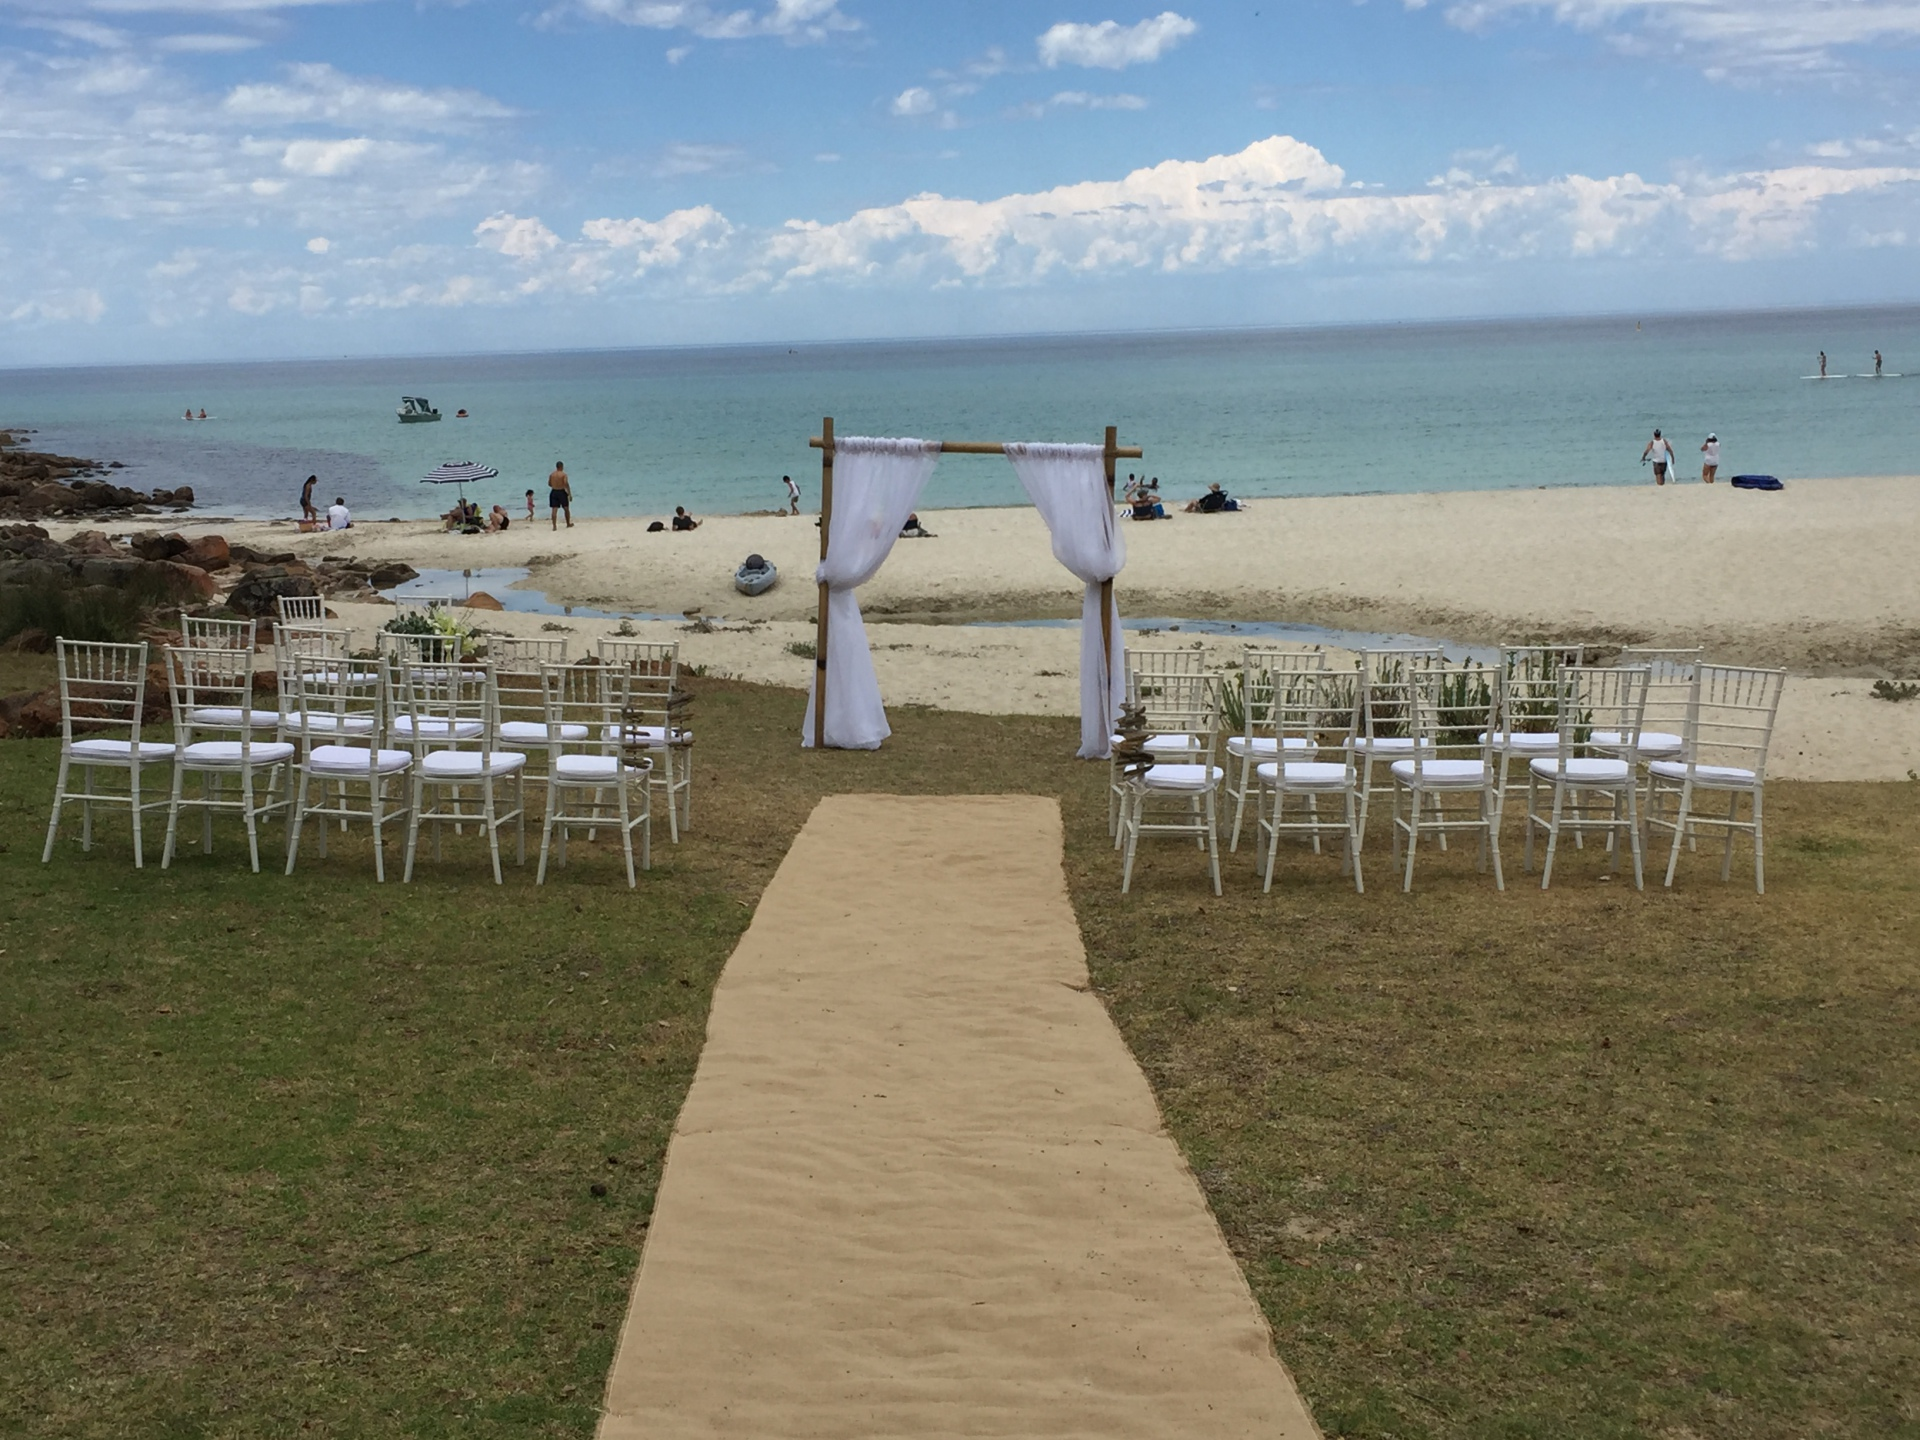 It's a nice day for a beach wedding!!